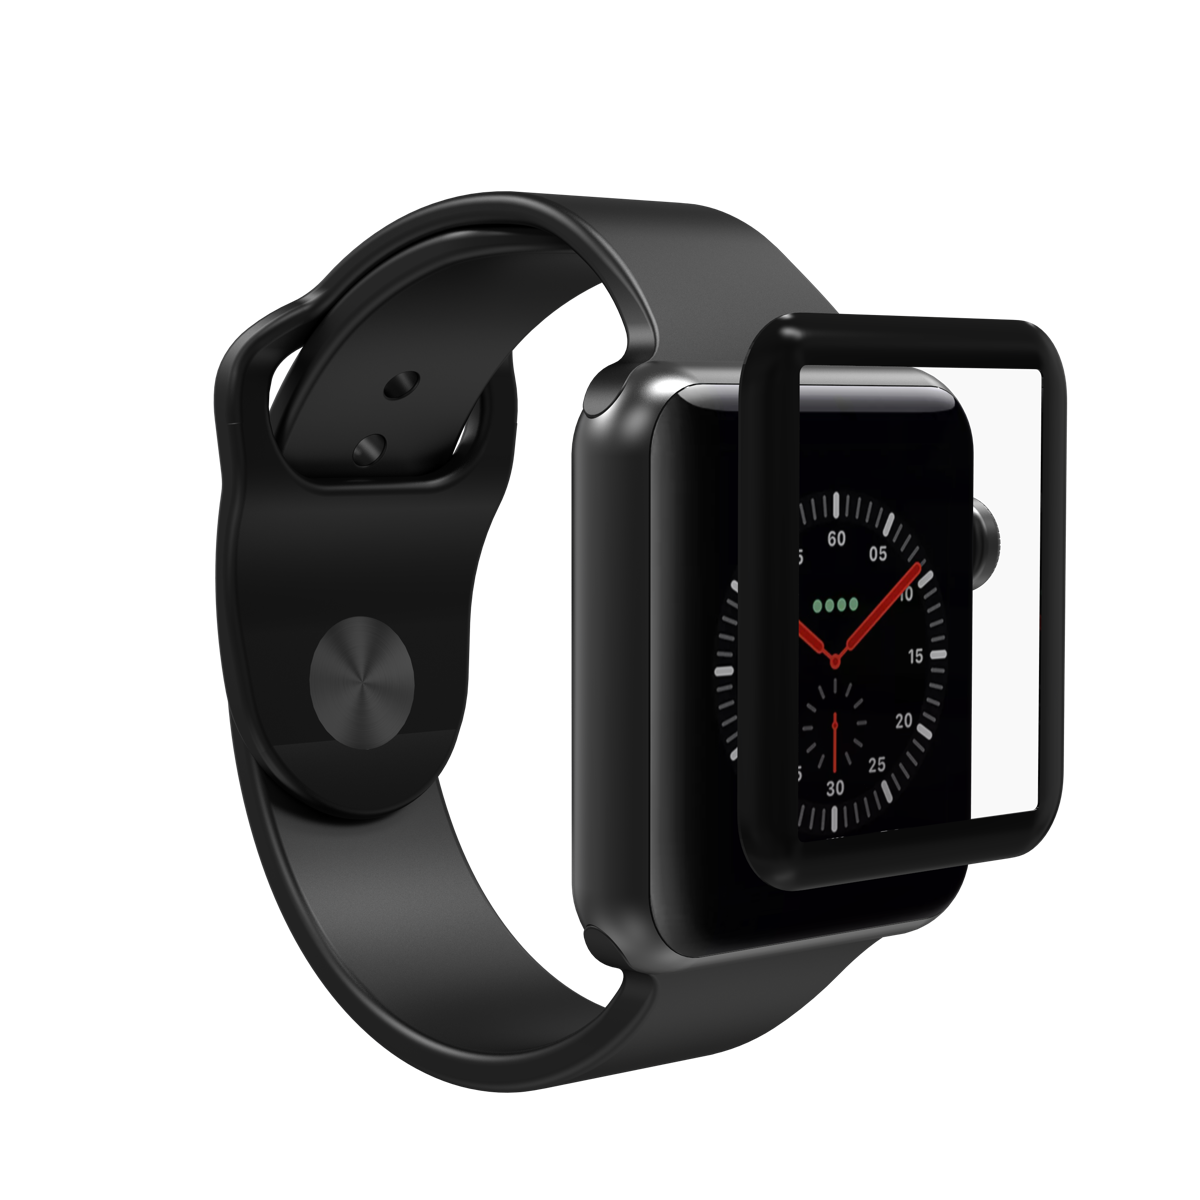 InvisibleShield Glass Curve Elite for the Apple Watch Series 3 38mm (Black)